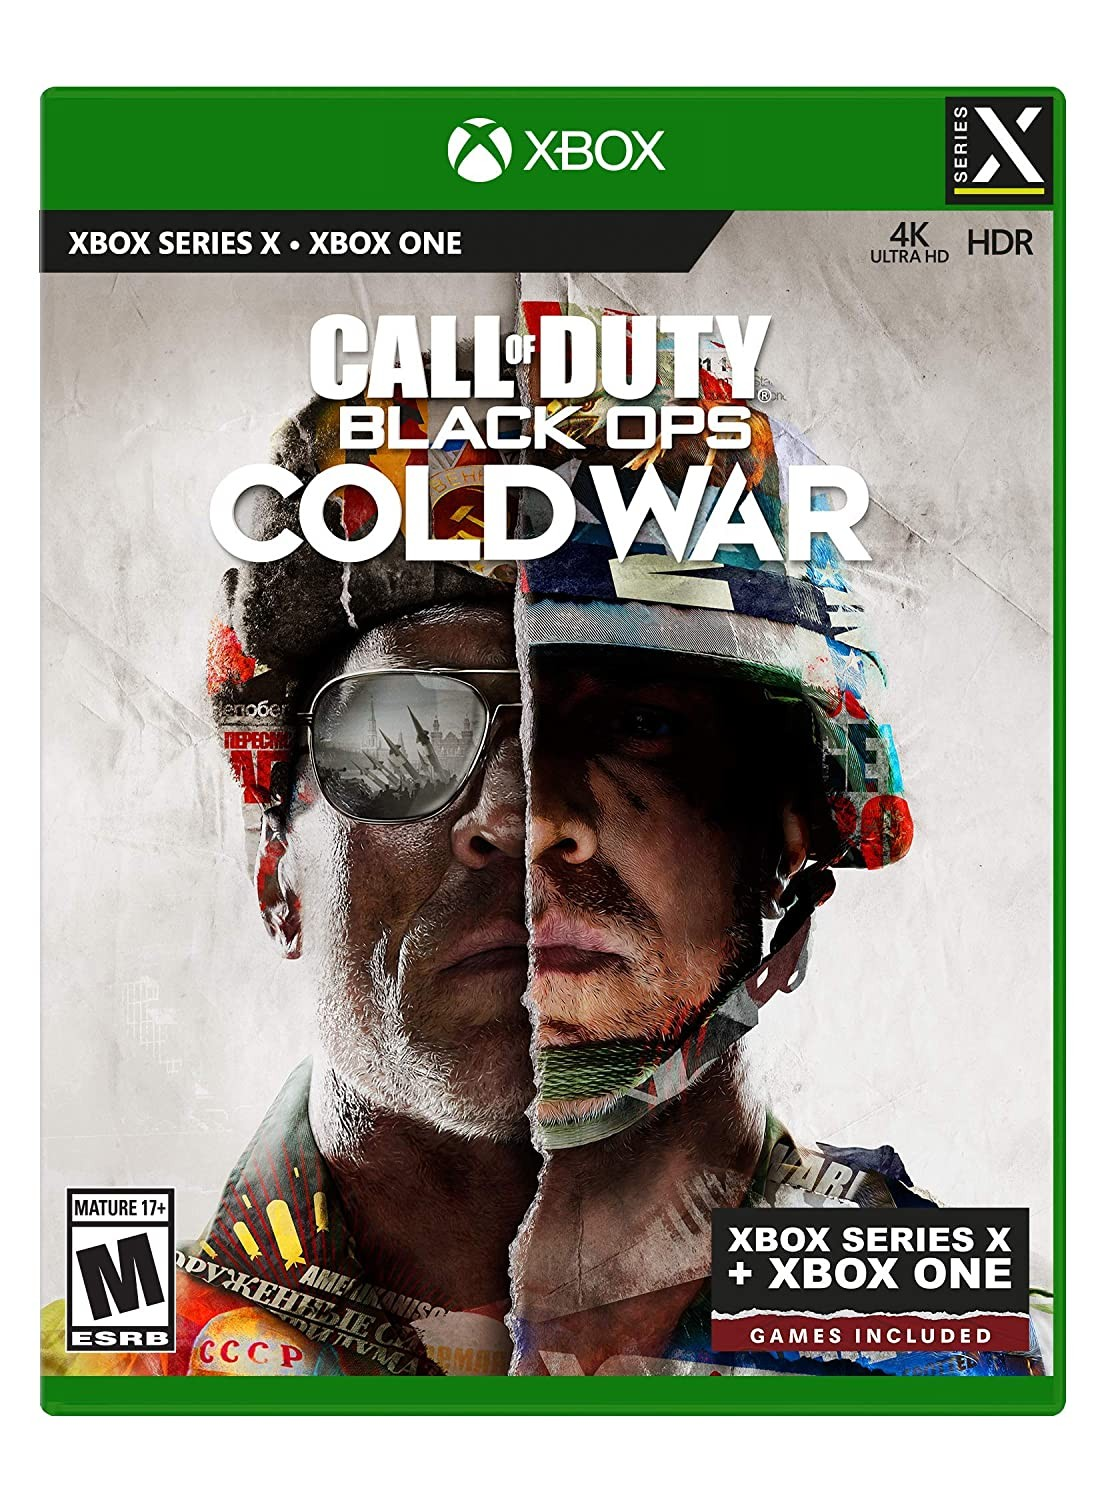 Call of Duty Black Ops Cold War XSX